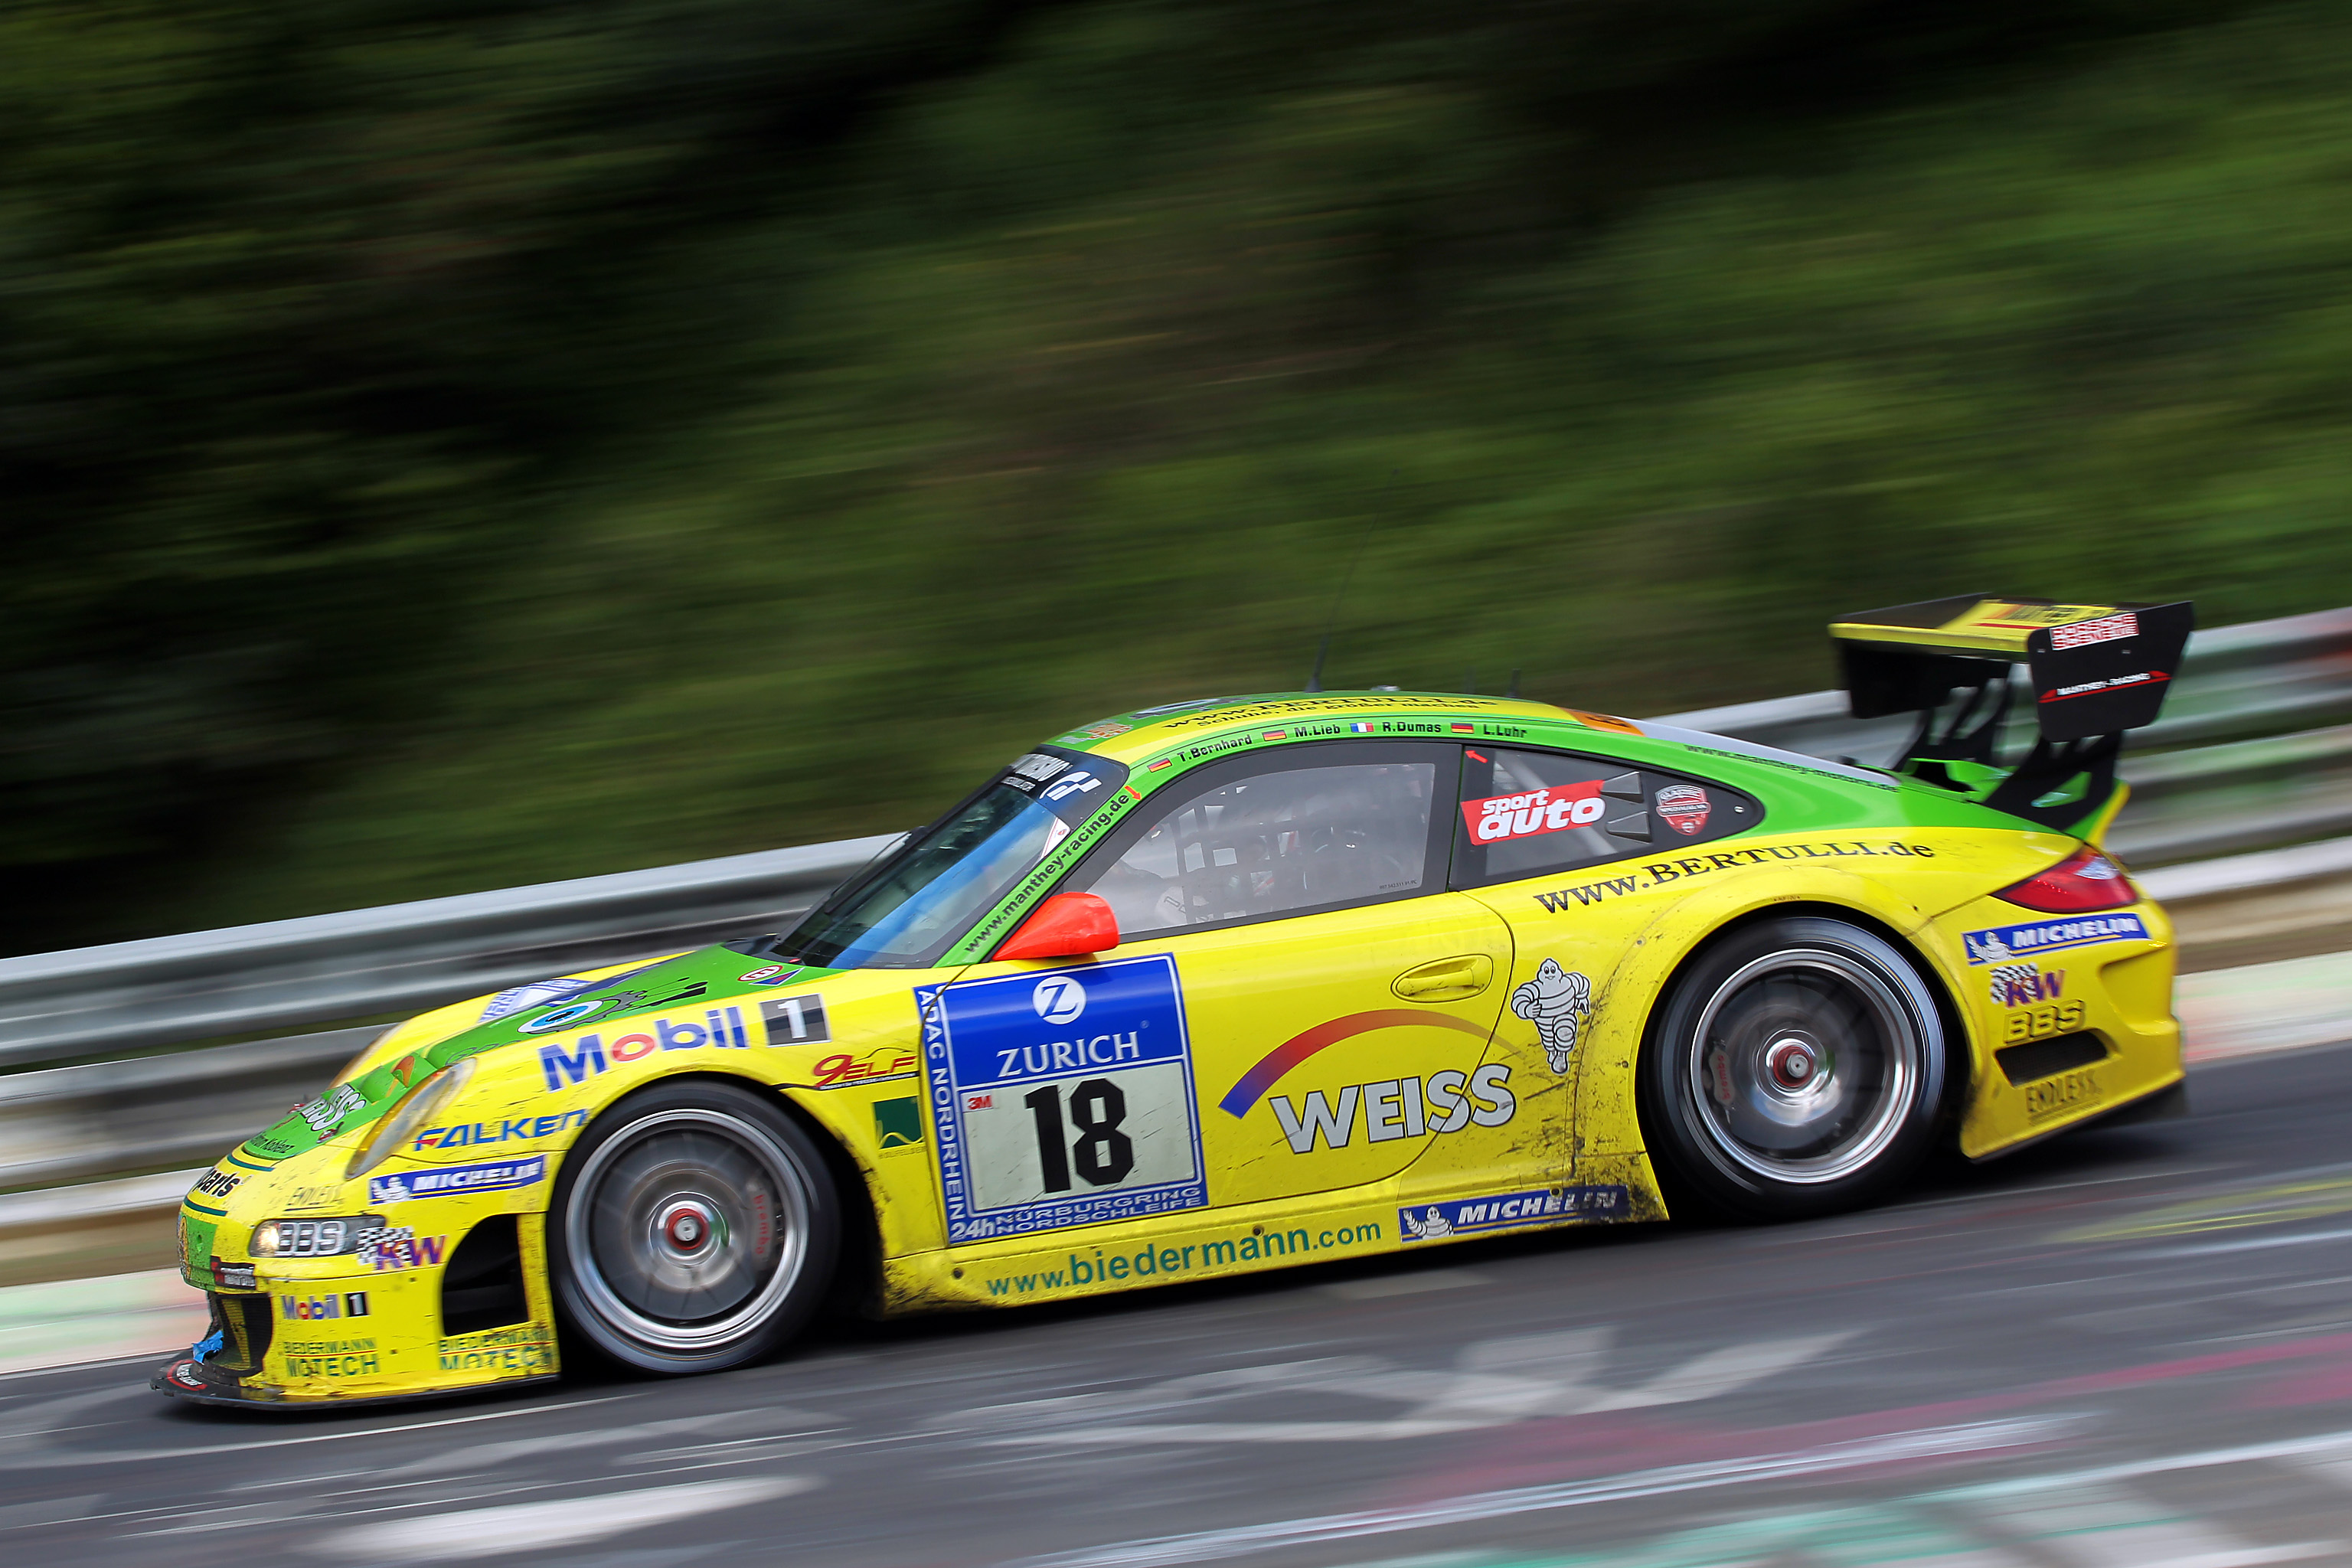 Porsche s magnificent triumph at the Nordschleife 24 Hour Race